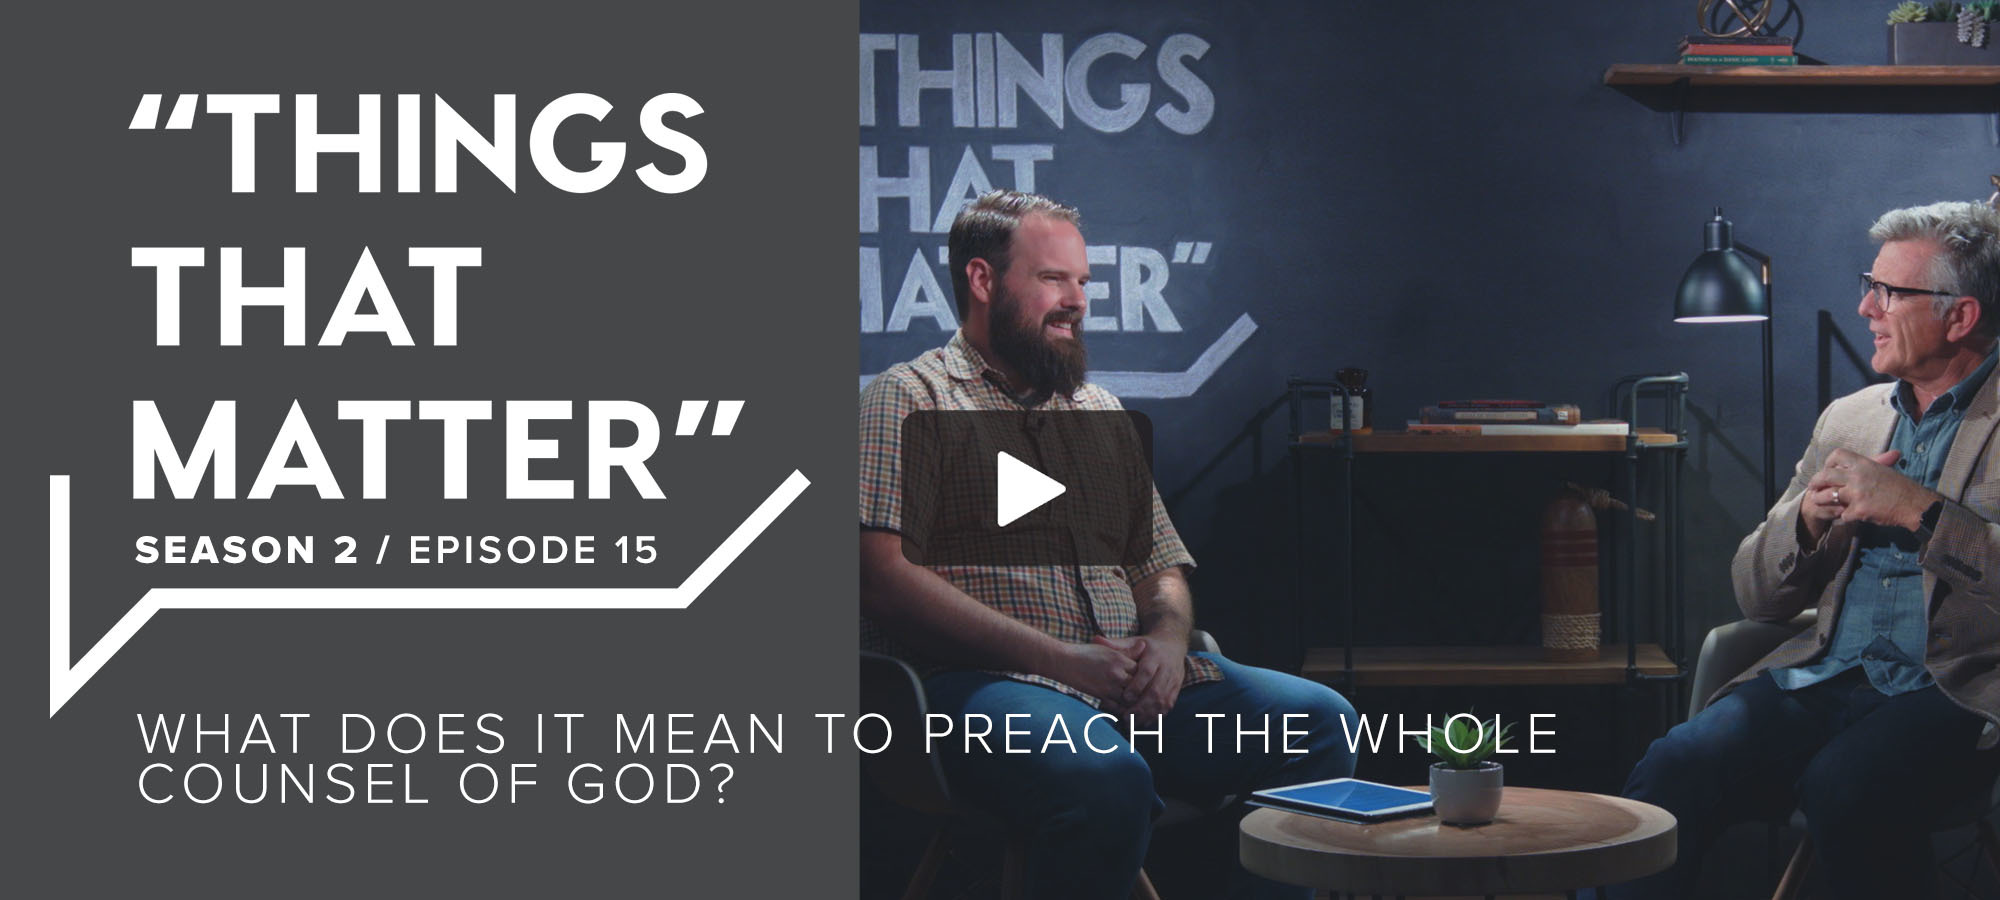 TTM S2 E15 - What Does It Mean to Preach the Whole Counsel of God?